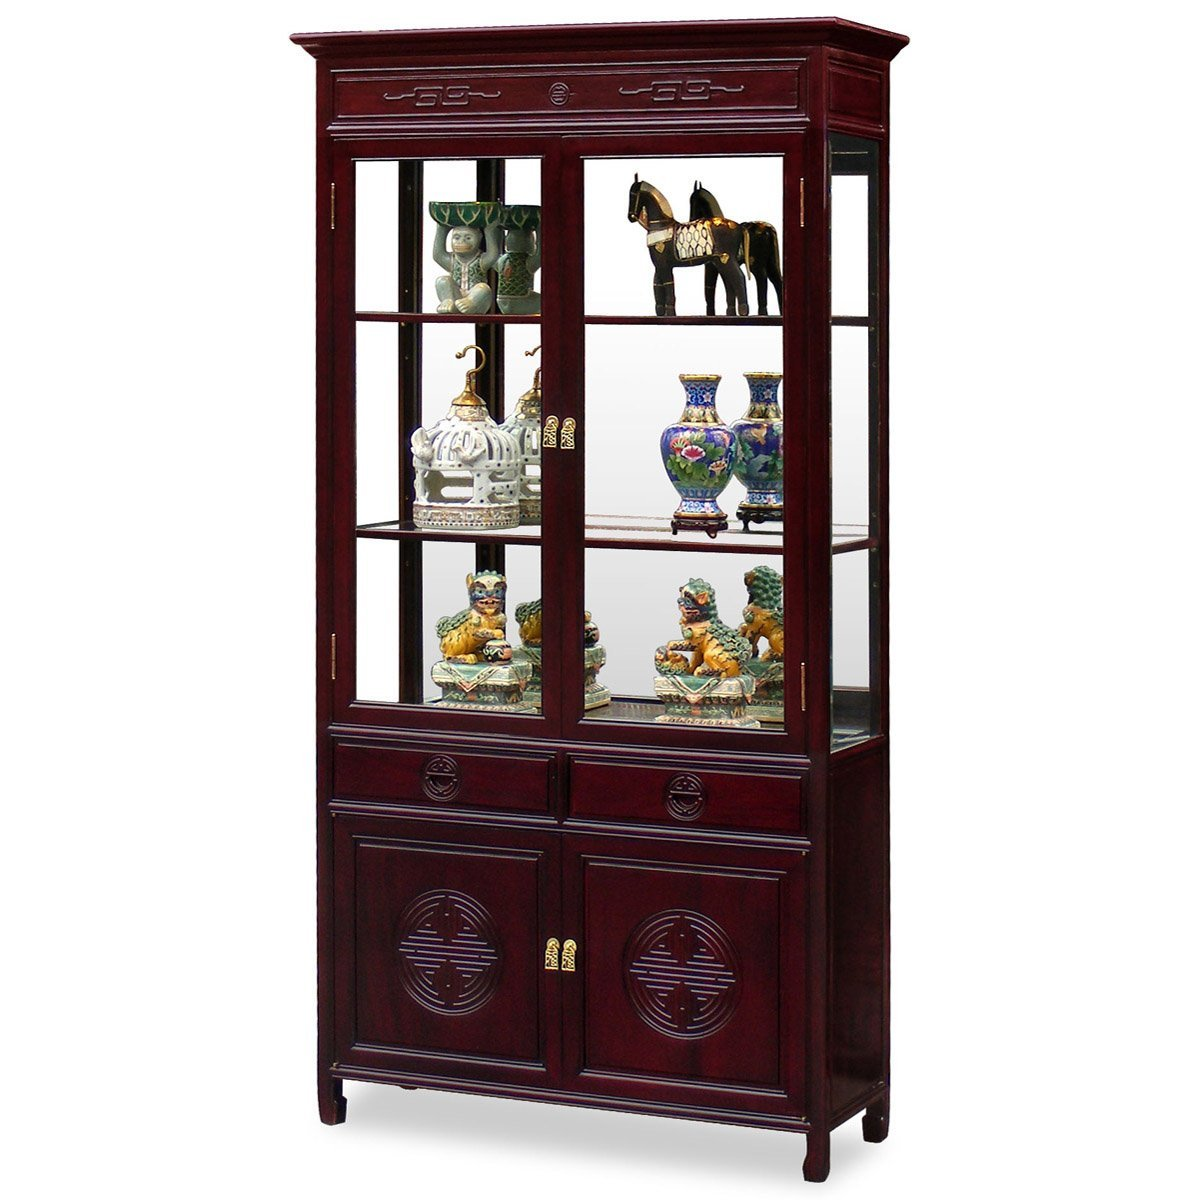 Superieur Get Quotations · China Furniture Online Rosewood China Cabinet, Longevity  Motif Display Cabinet Dark Cherry Finish